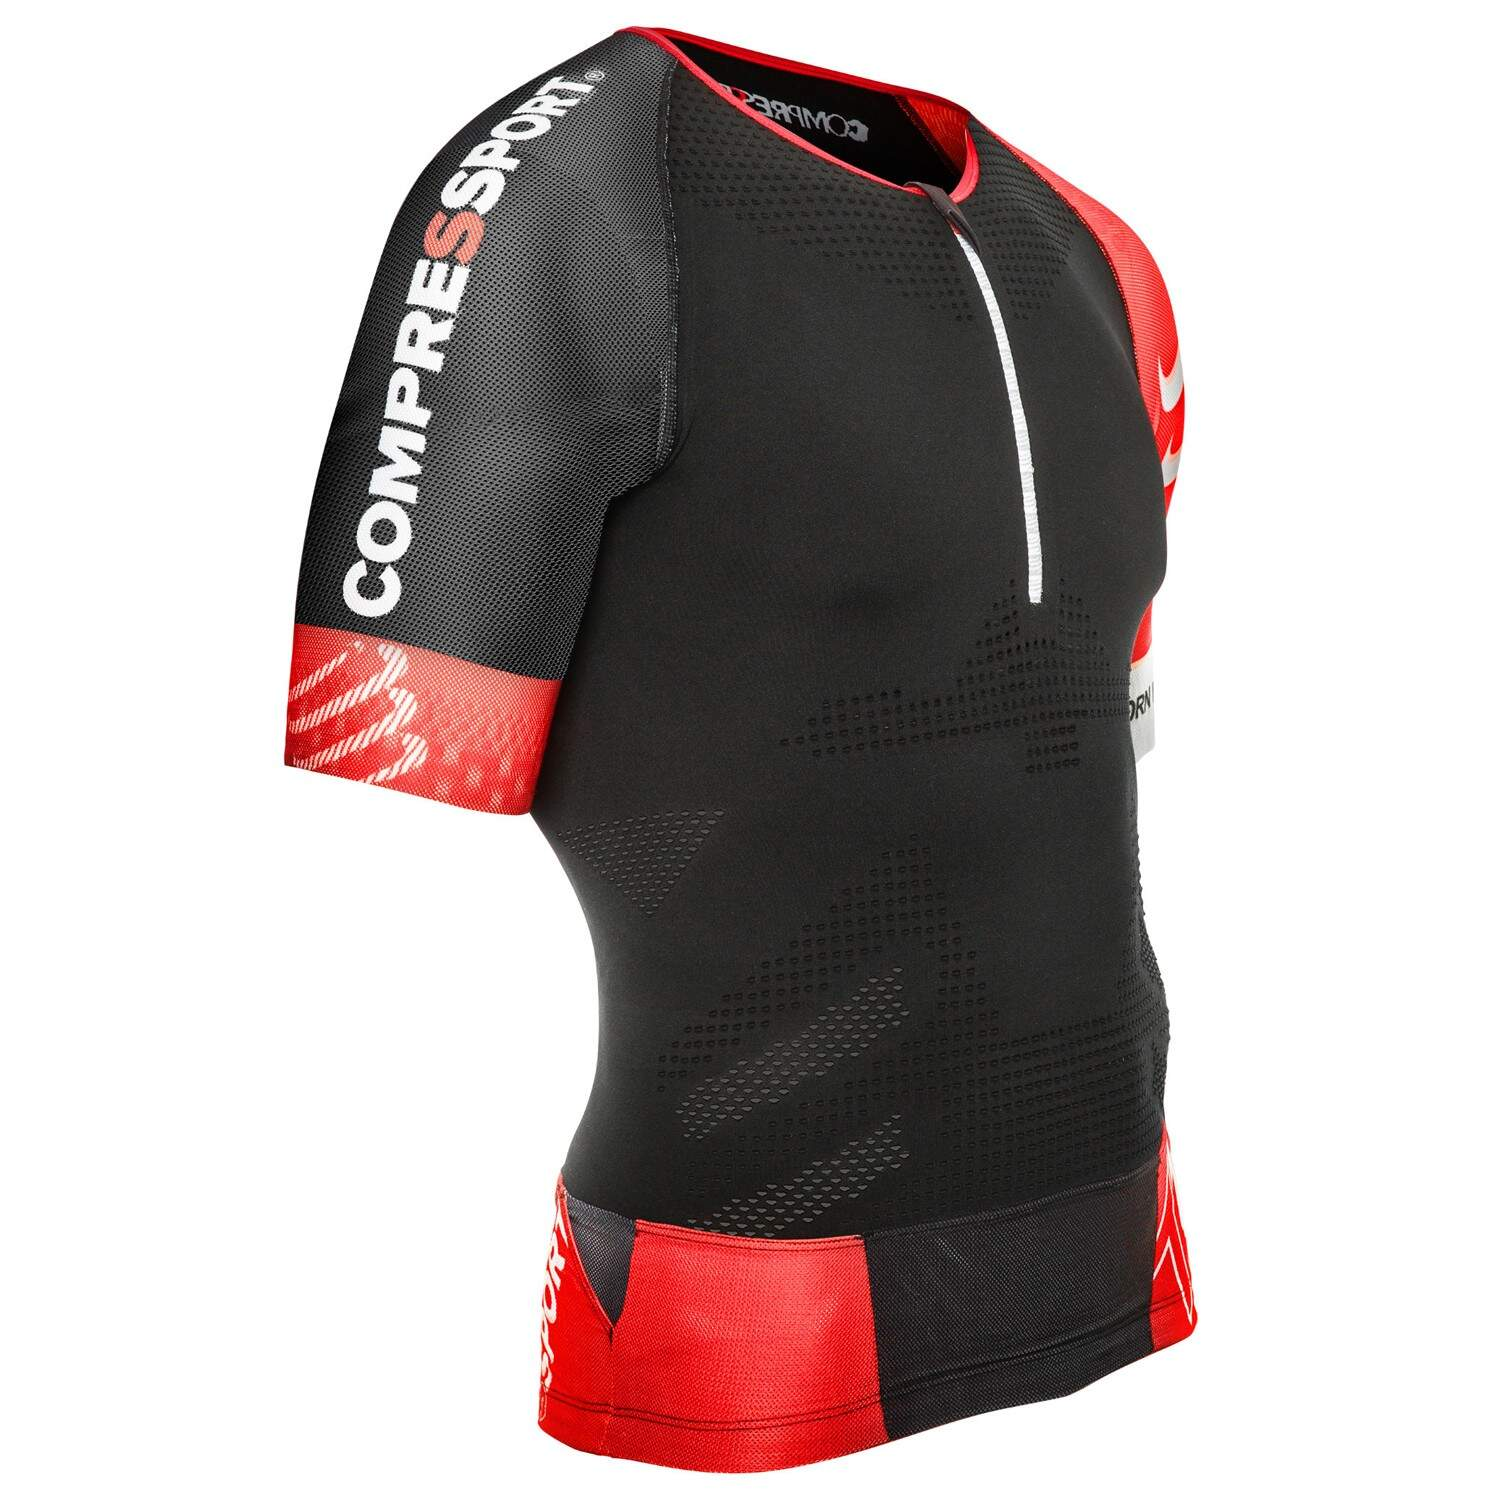 T-Shirt de compressão Compressport Tr3 Aero Tank Triathlon